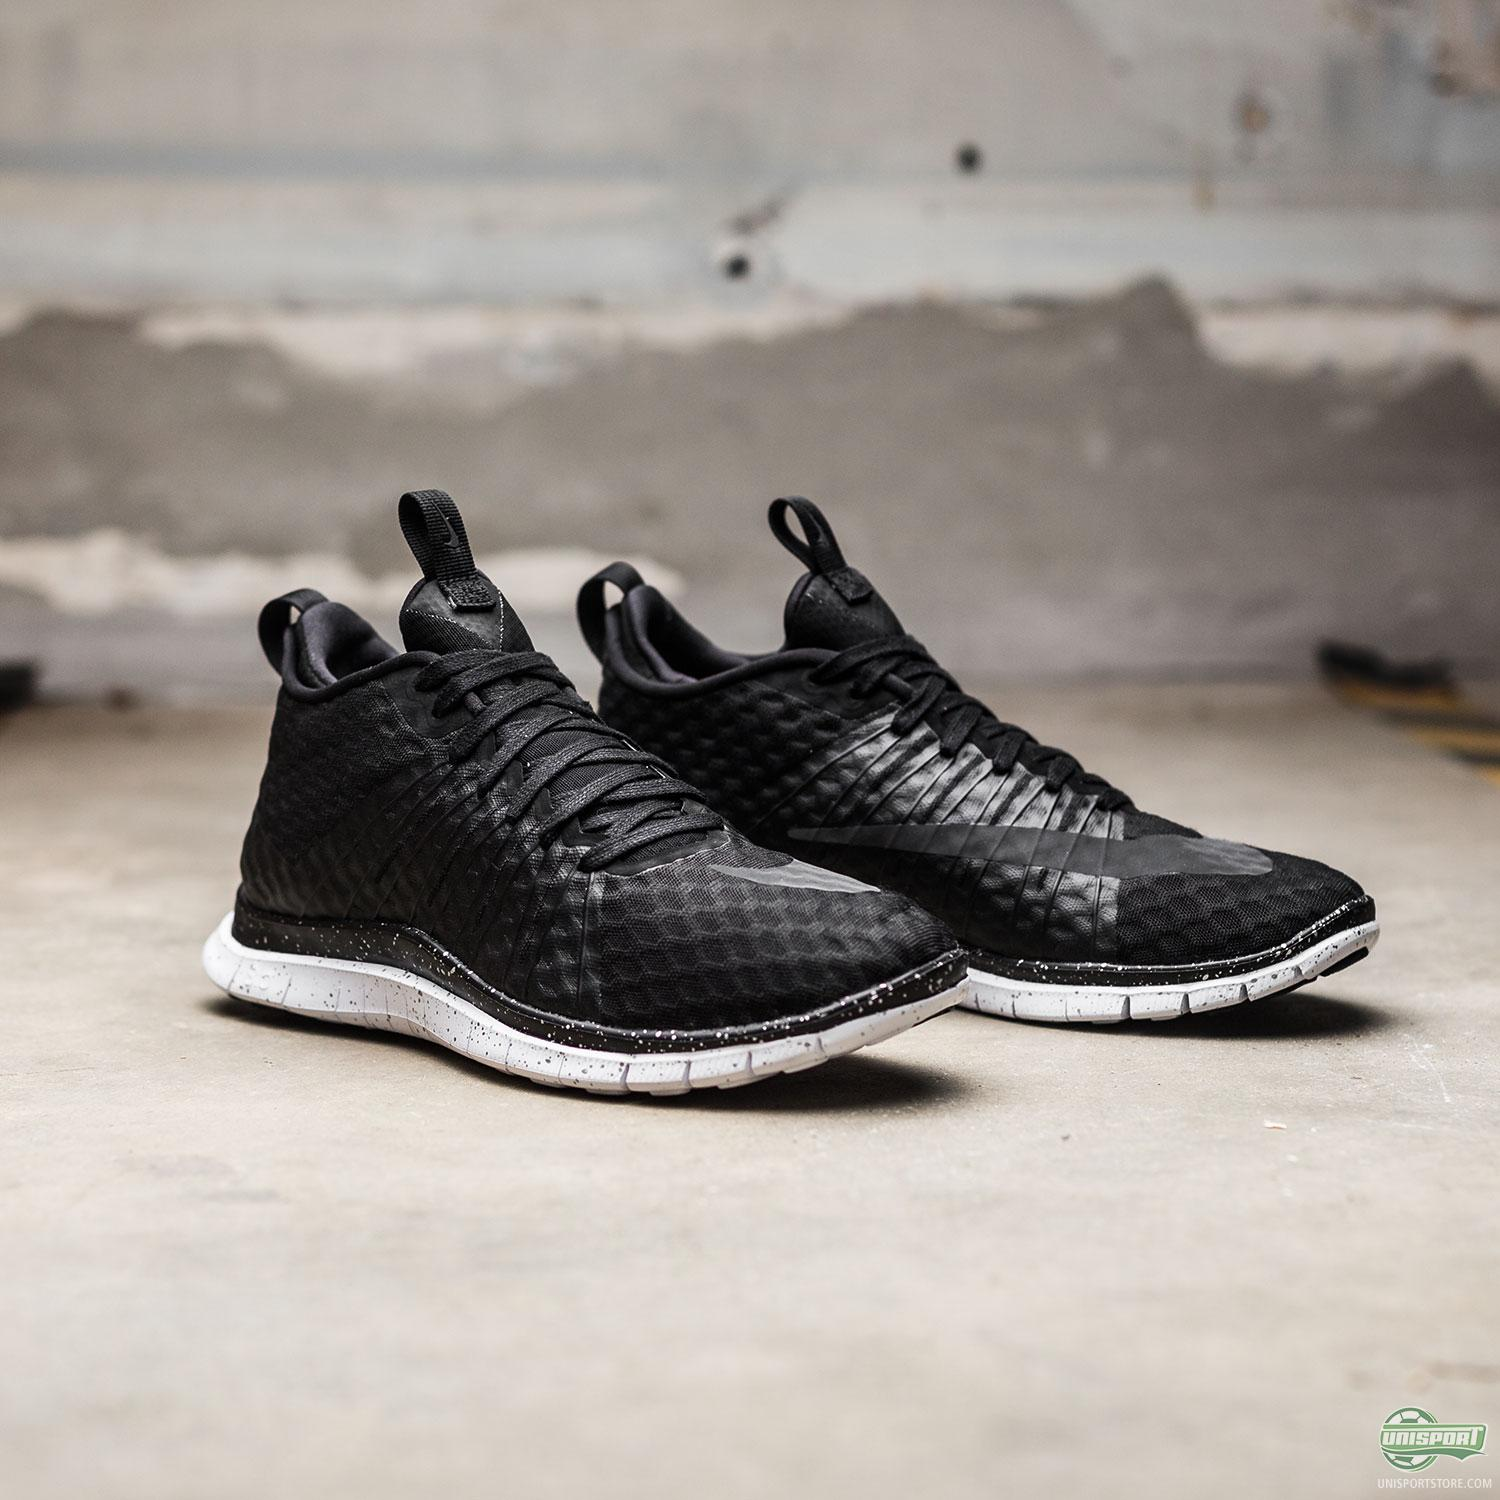 check out 9e16a 16aff Nike unveil the new Free Hypervenom II in a brilliant colourway